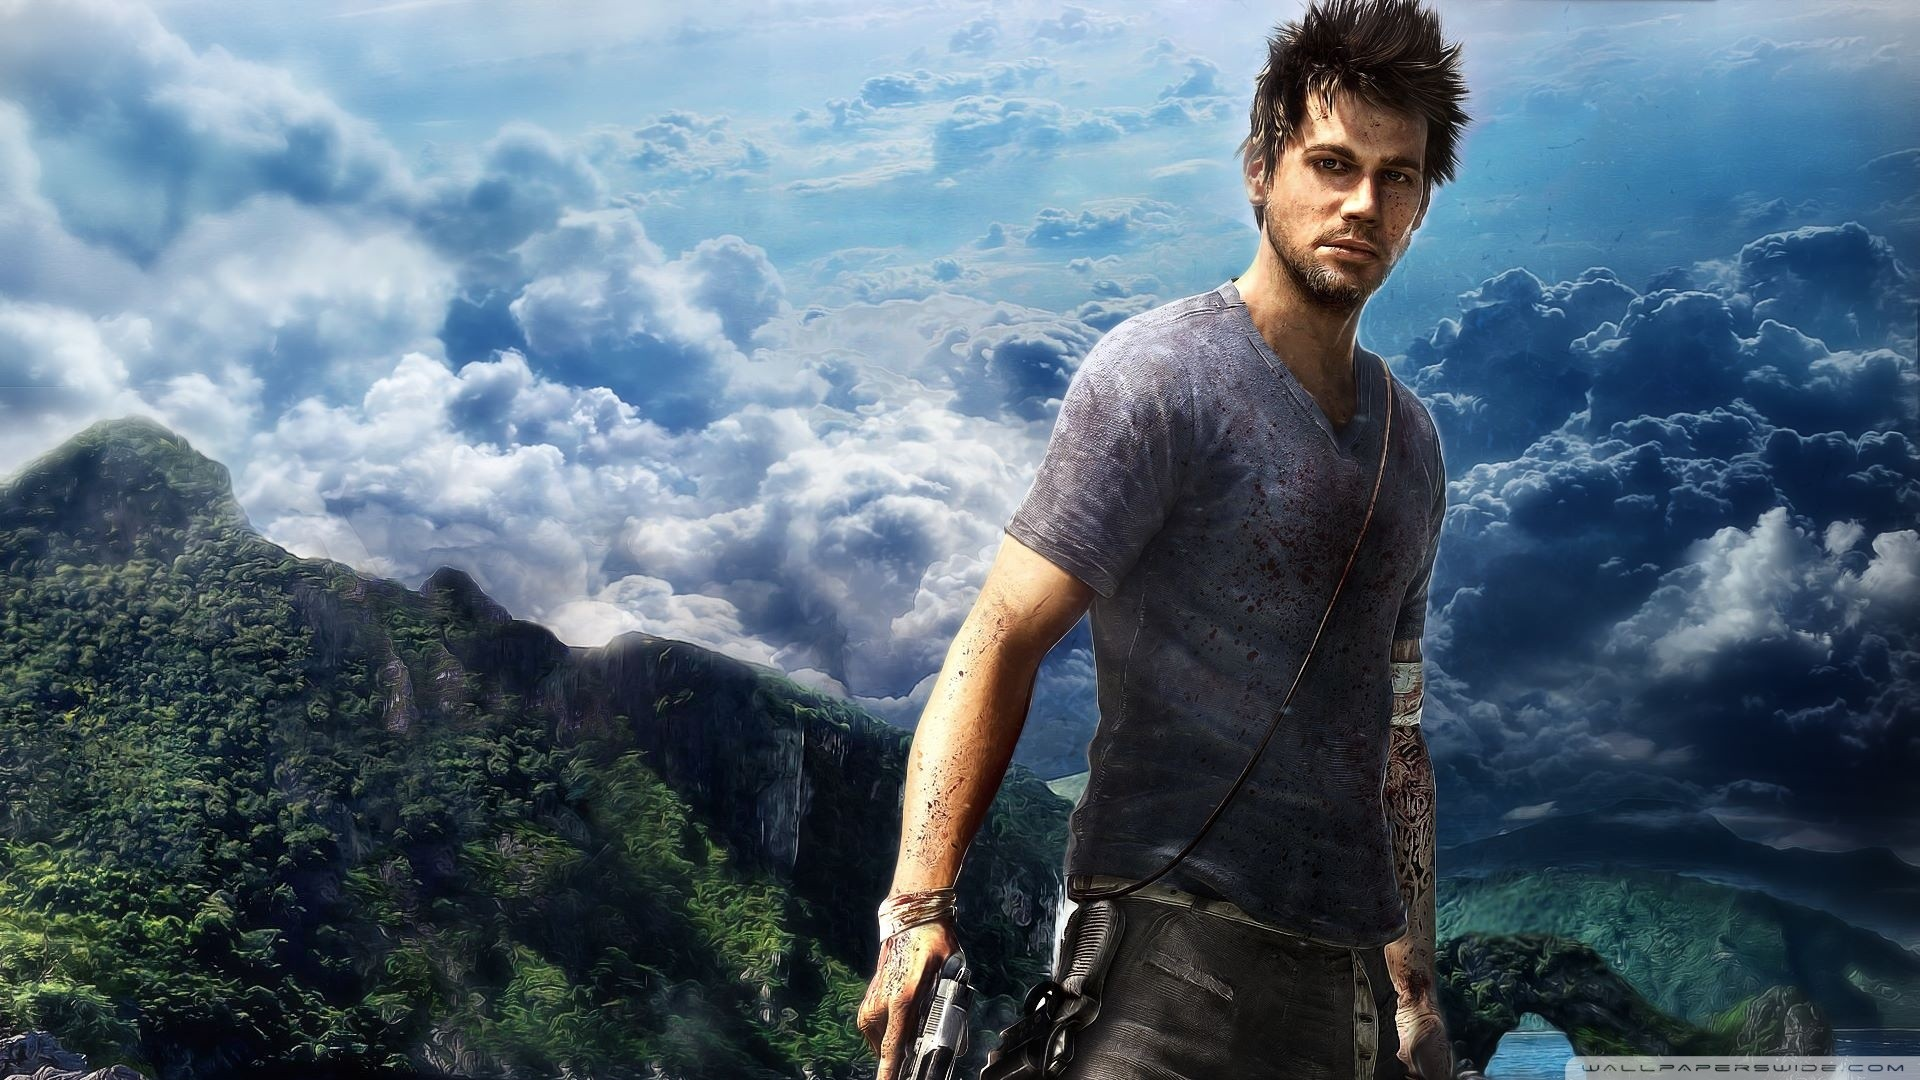 Far Cry 3 failed as satire. For Joe Köller, it failed as social